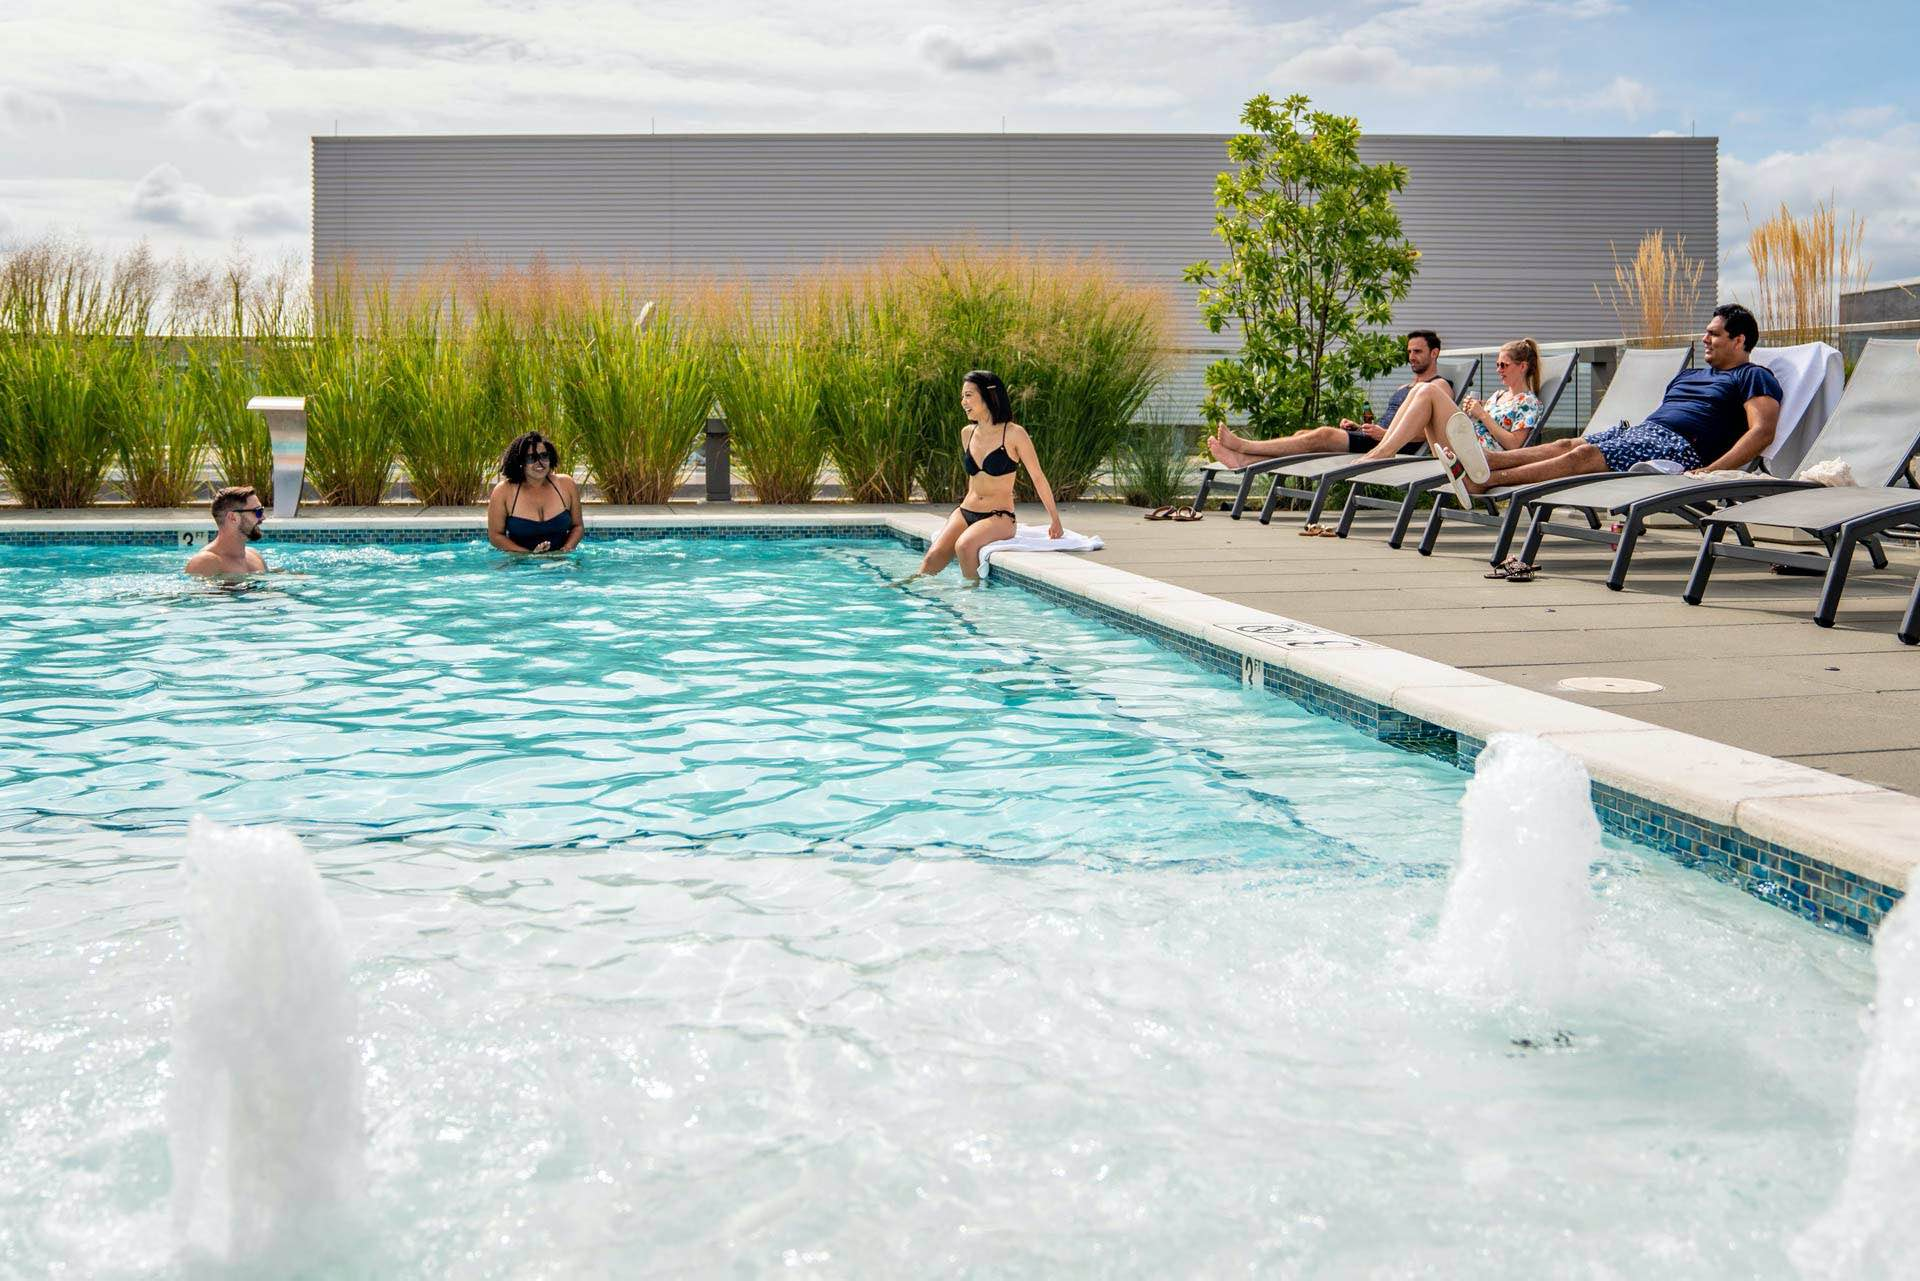 Rooftop pool designed with the aesthetic of the best resorts.